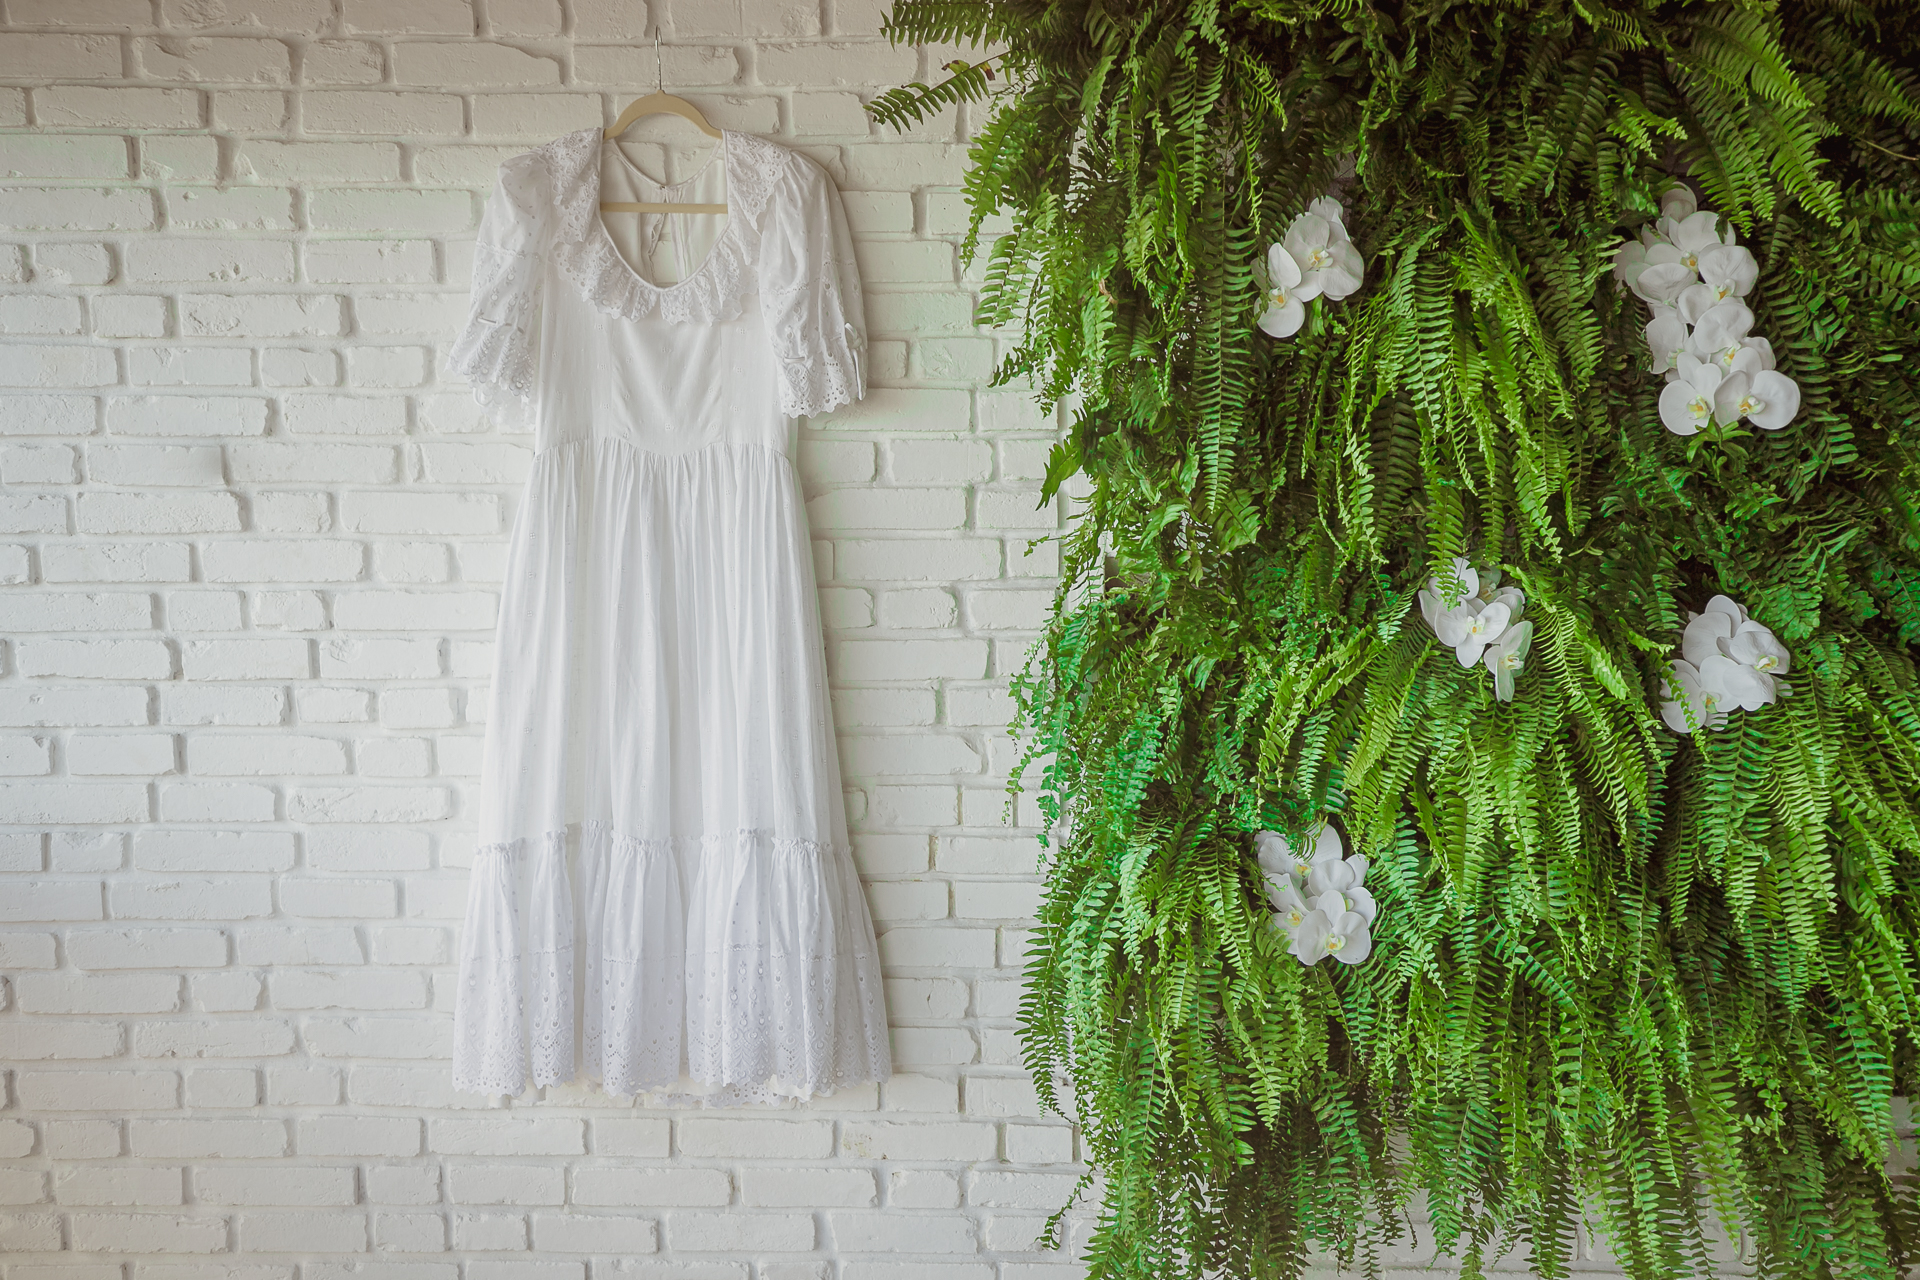 Maceio, Alagoas, Brazil Wedding Gown Detail Image | The bride's dress hangs on a wall